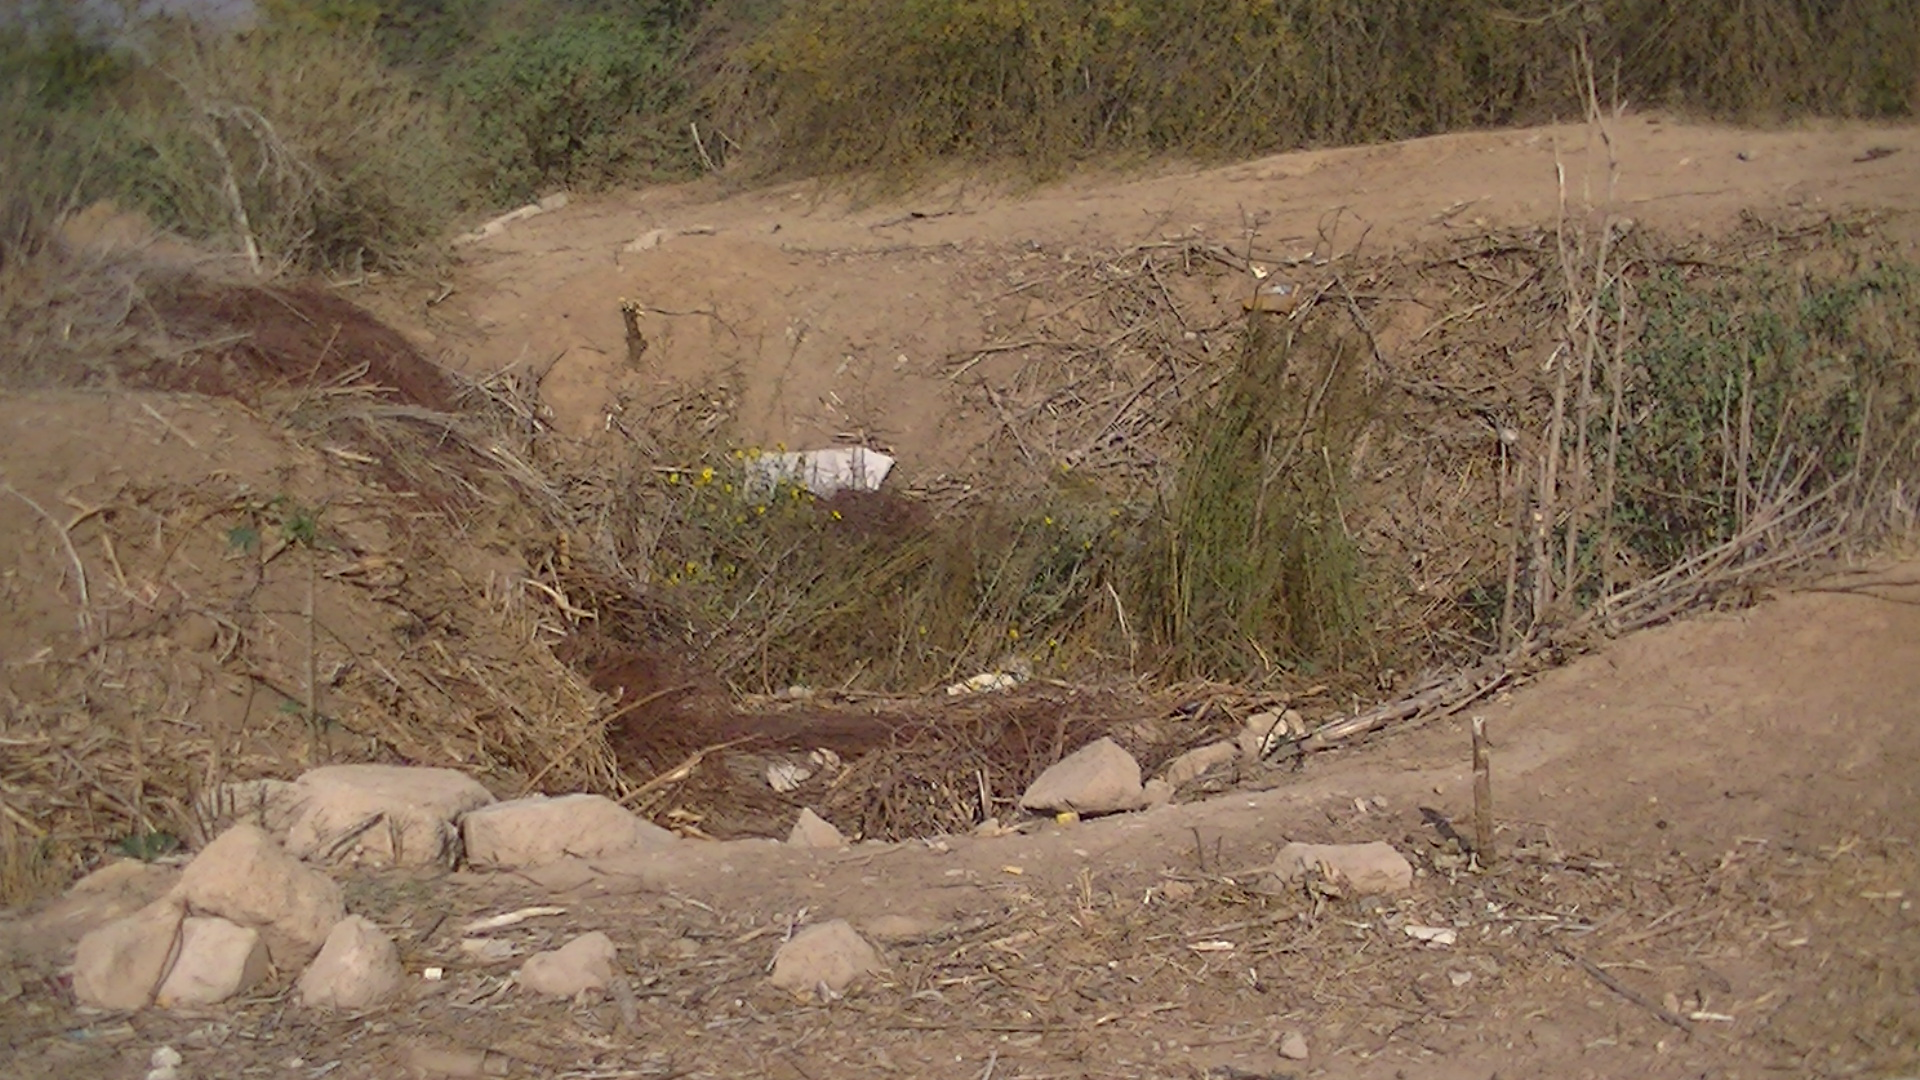 Crater caused by an F16 airstike in December 2012 Beit Hanoun - Photo taken on 6/11/13